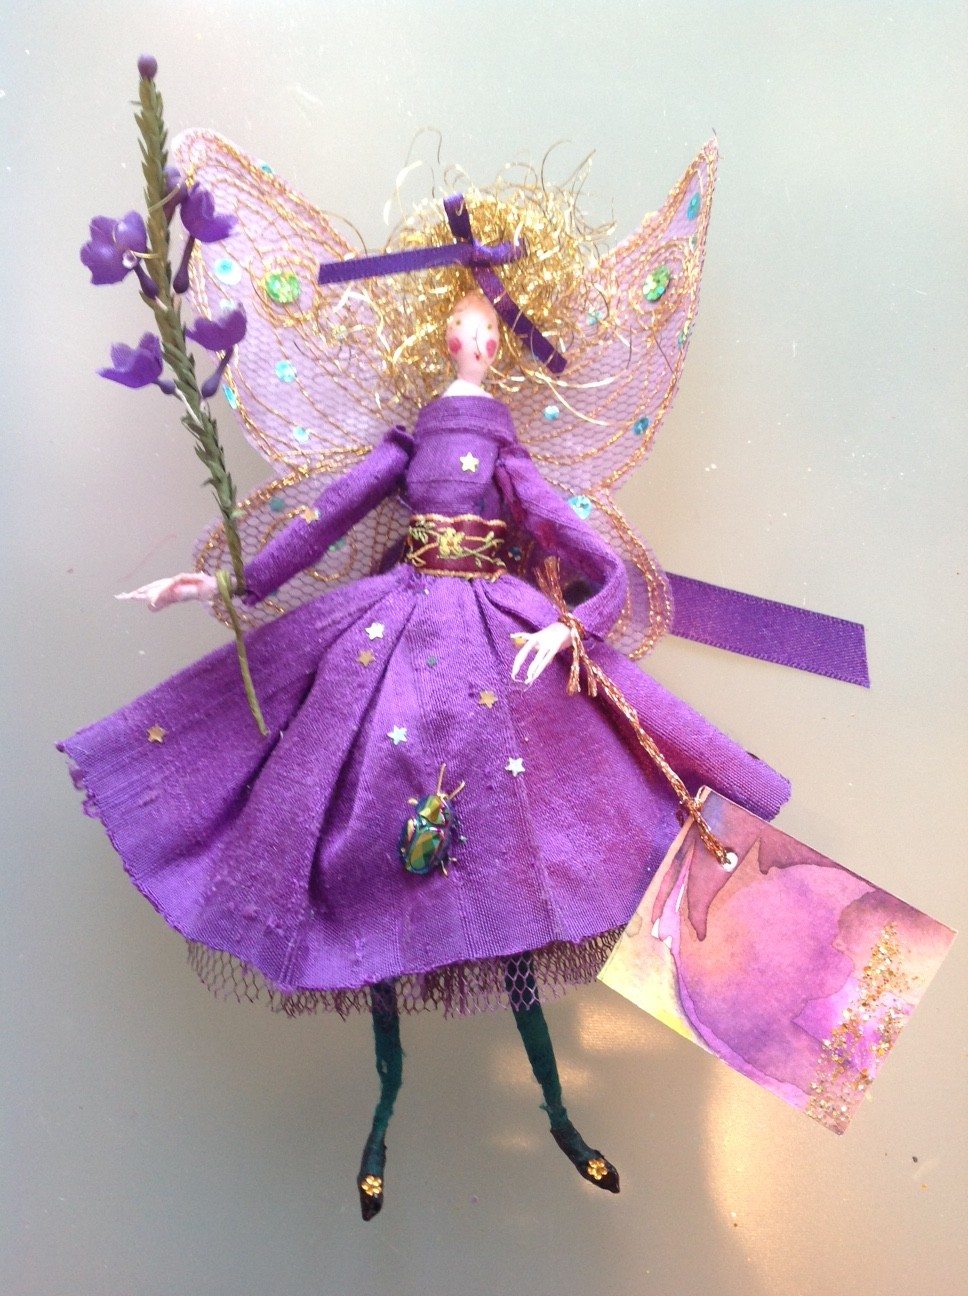 AMETHYST, a 15cm fairy with a silk painted head . She is wearing a shot silk dress with satin ribbons and an iridescent glass beetle. She has stiffly embroidered wings and is holding a spray of fabric flowers. She comes in an organza bag with dried petals and her painted name tag. £25 plus £2 postage.